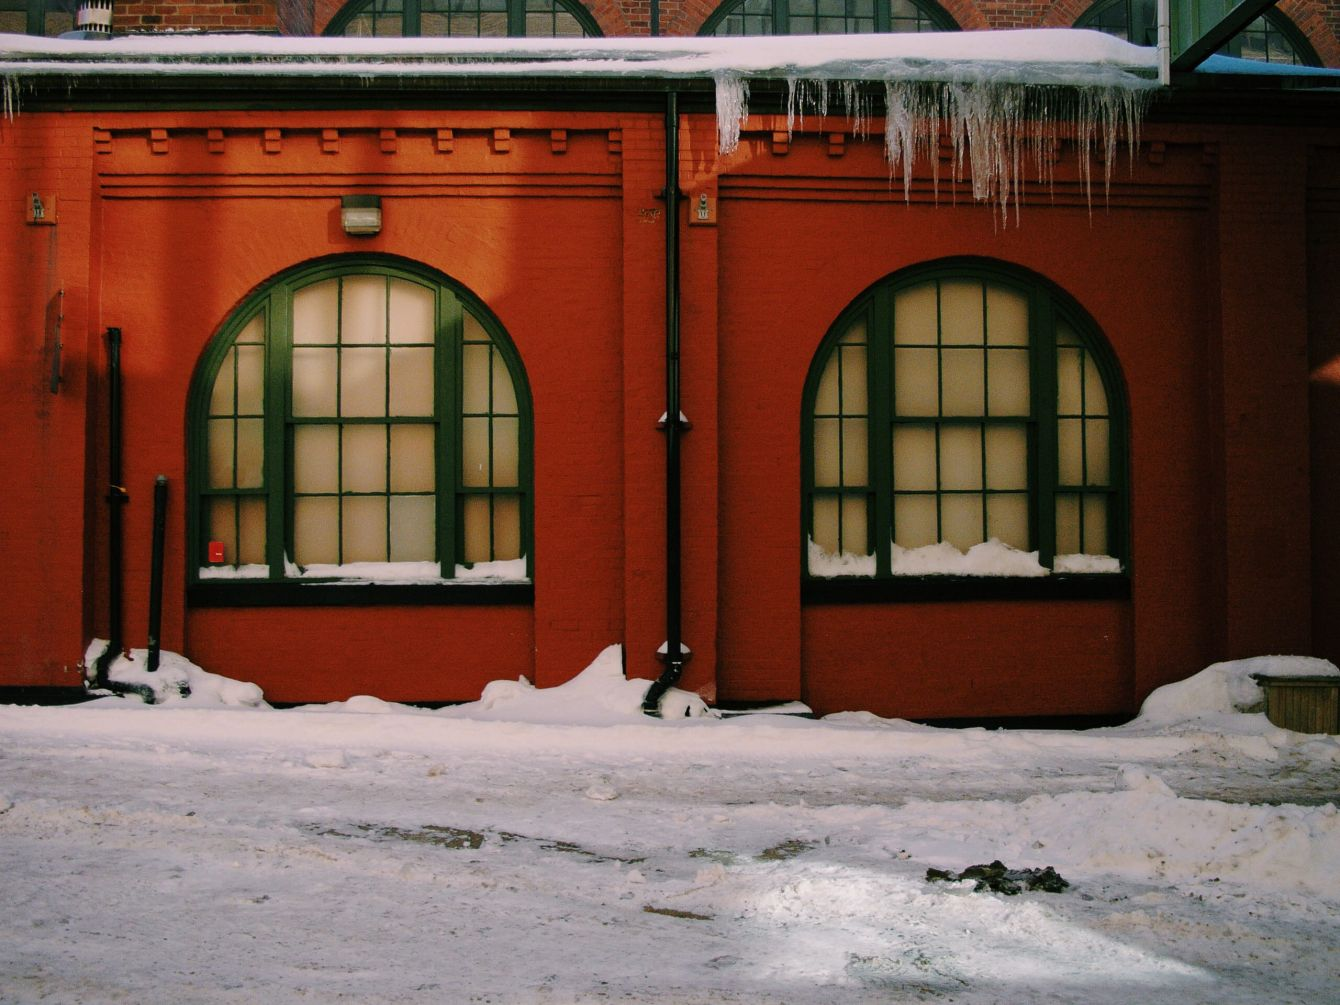 Click thumbnail to see details about photo - Saint John Market Icecicles Photograph